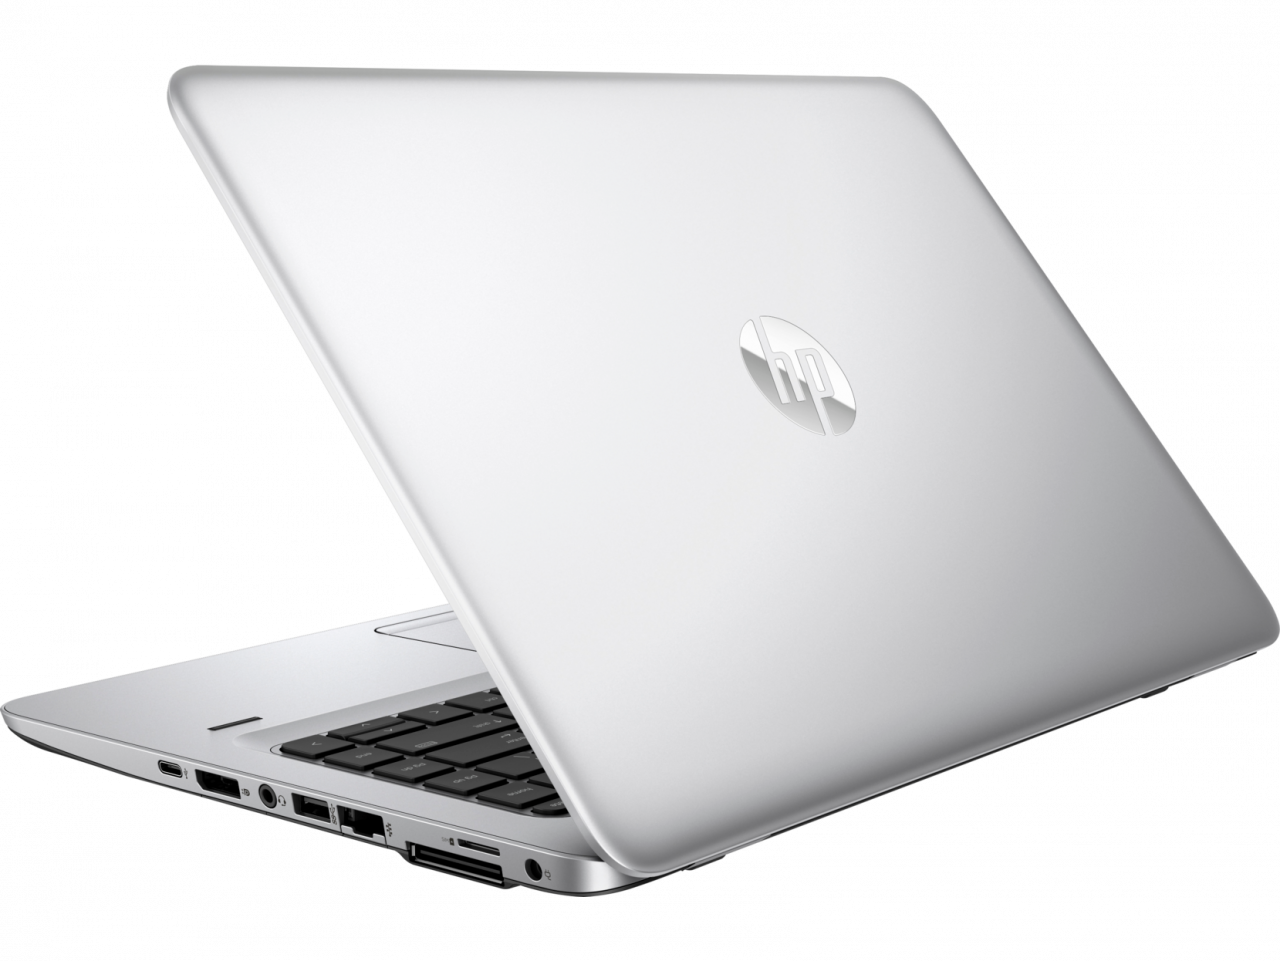 HP Elitebook 840 G3 Core i5 6200U 4GB RAM 500GB HDD 14